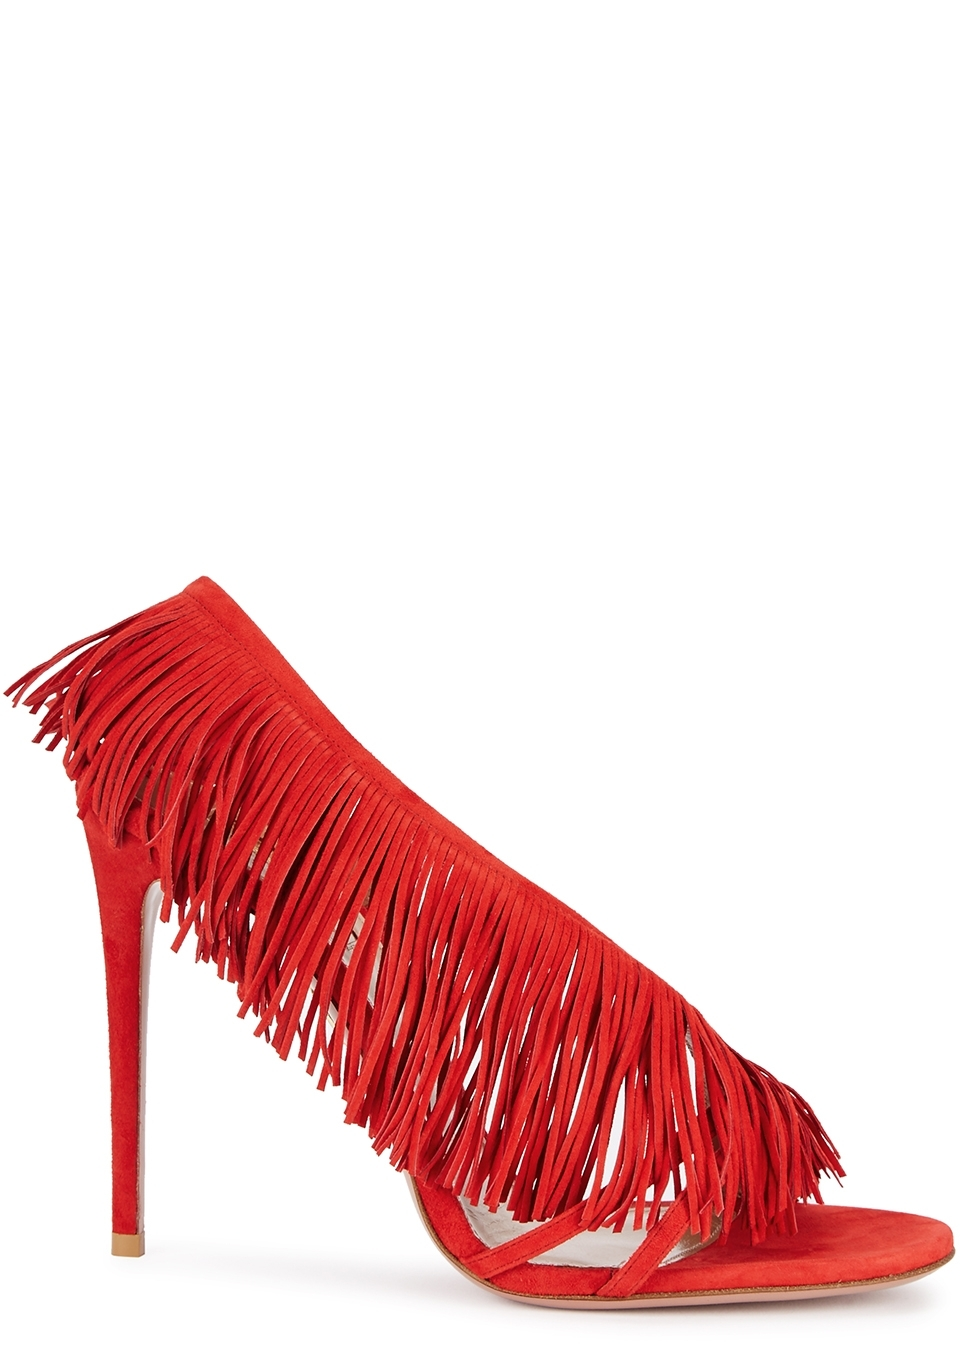 8450e5390a6cf8 Aquazzura Shoes